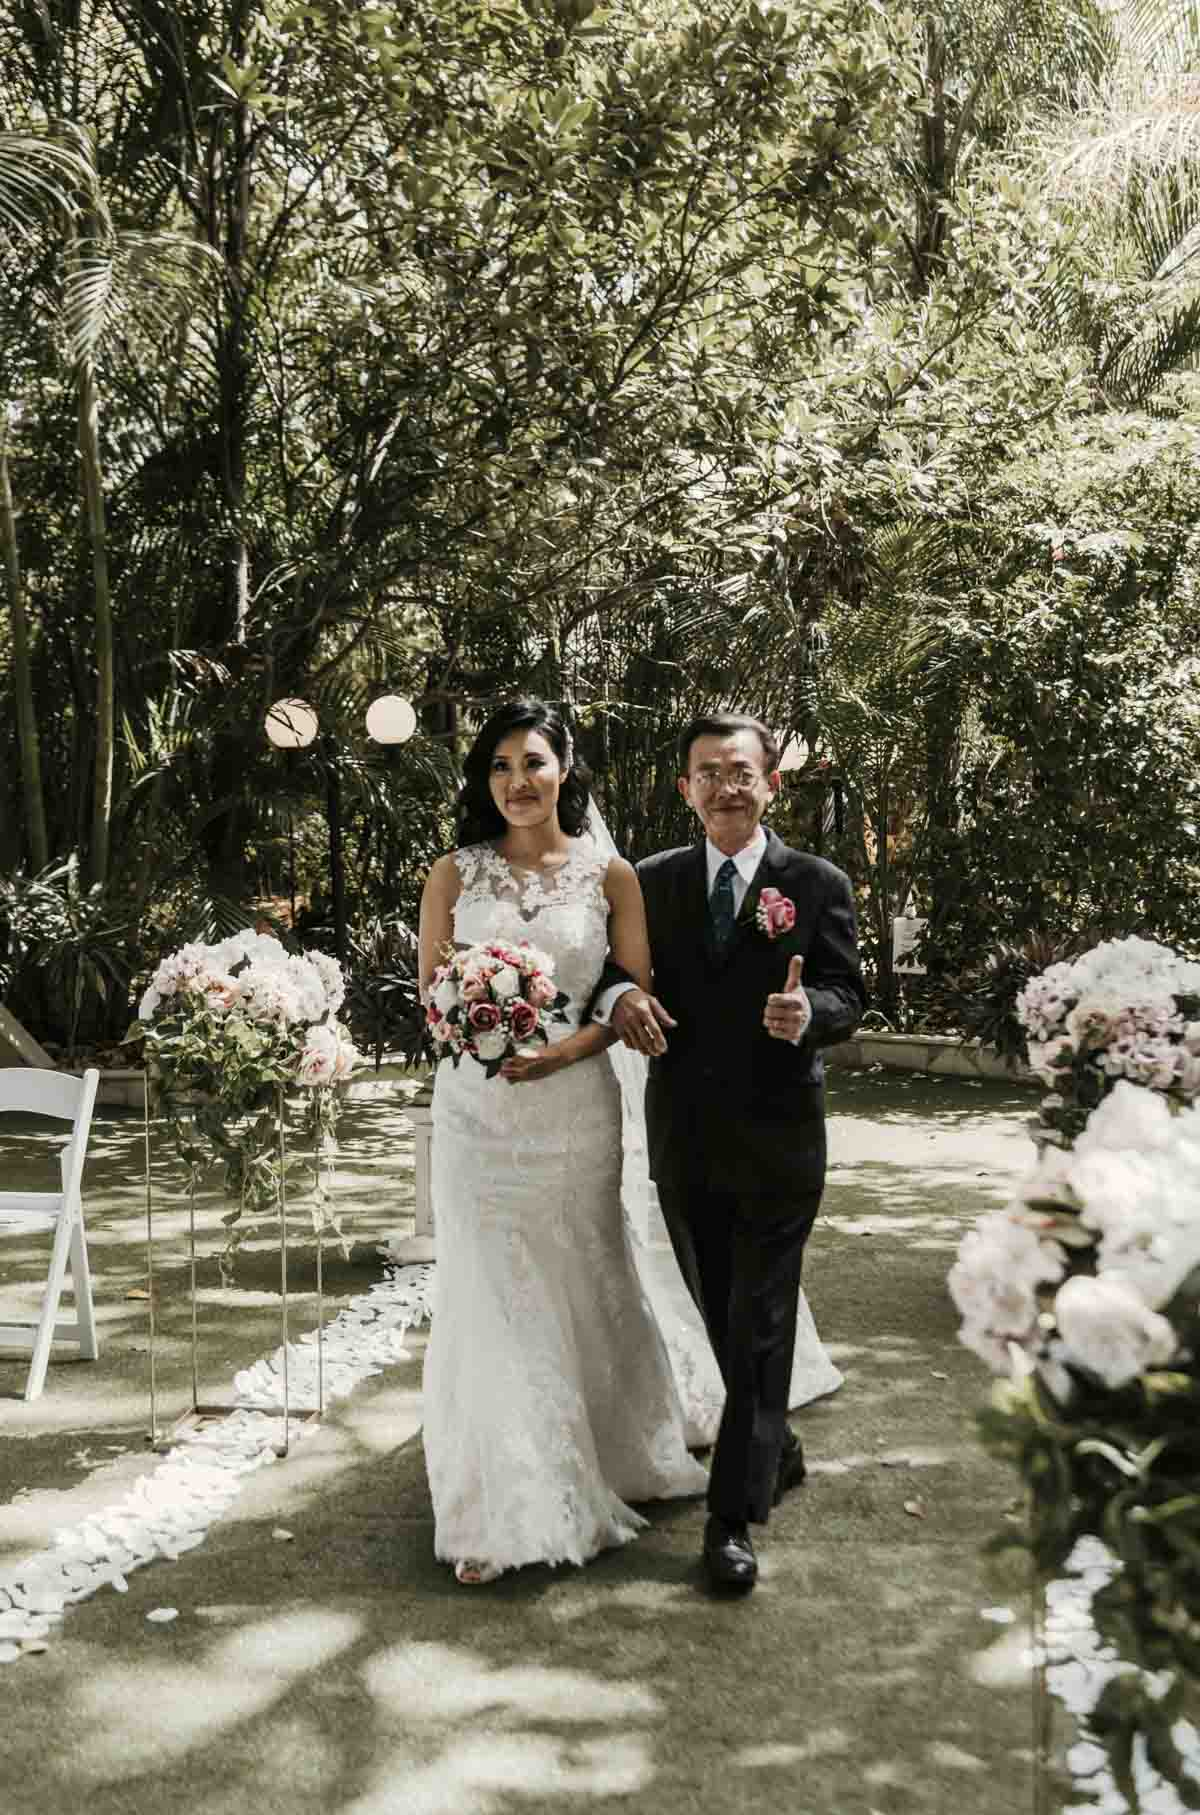 Brisbane bride, Shay was so grateful to have the support of her family for her modern and romantic fusion wedding celebration.